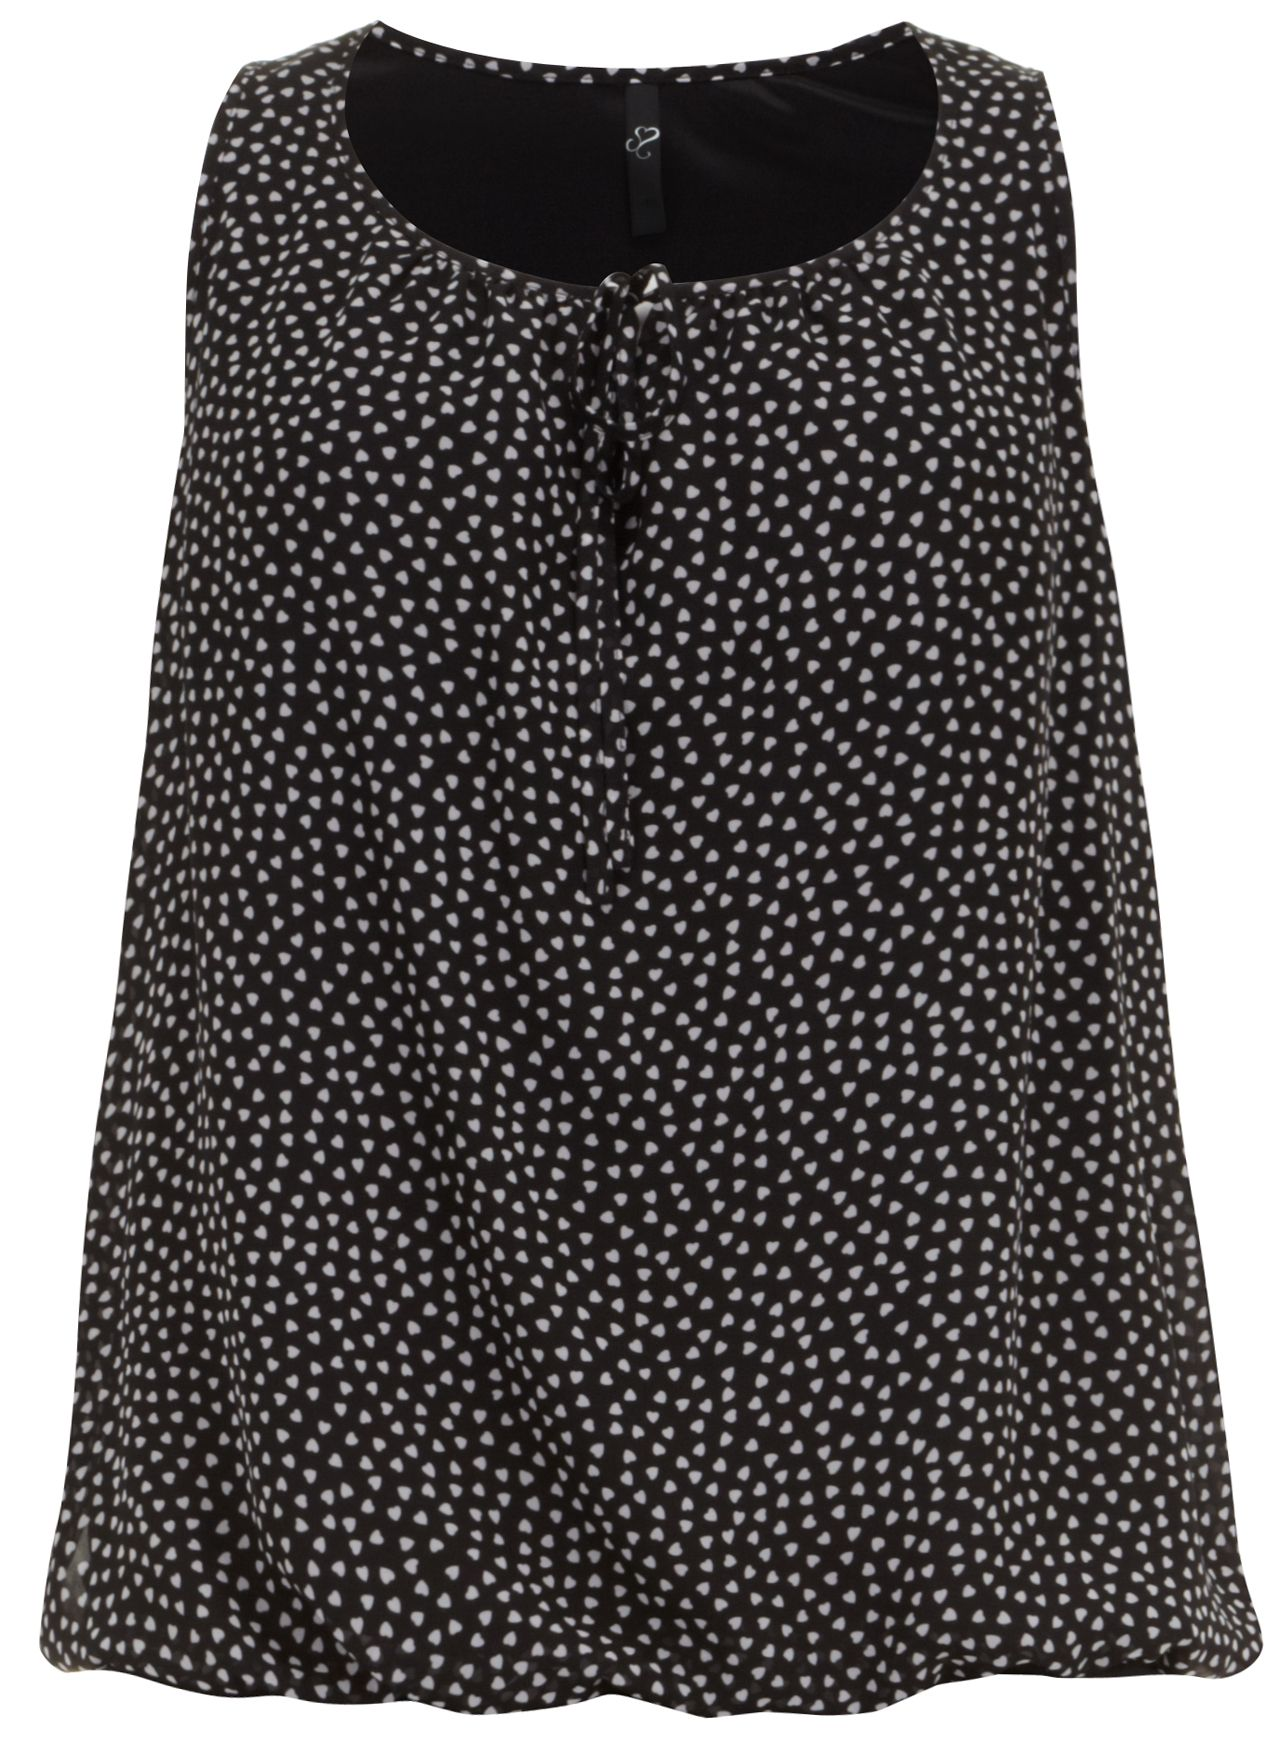 Heart print sleeveless bubble hem top